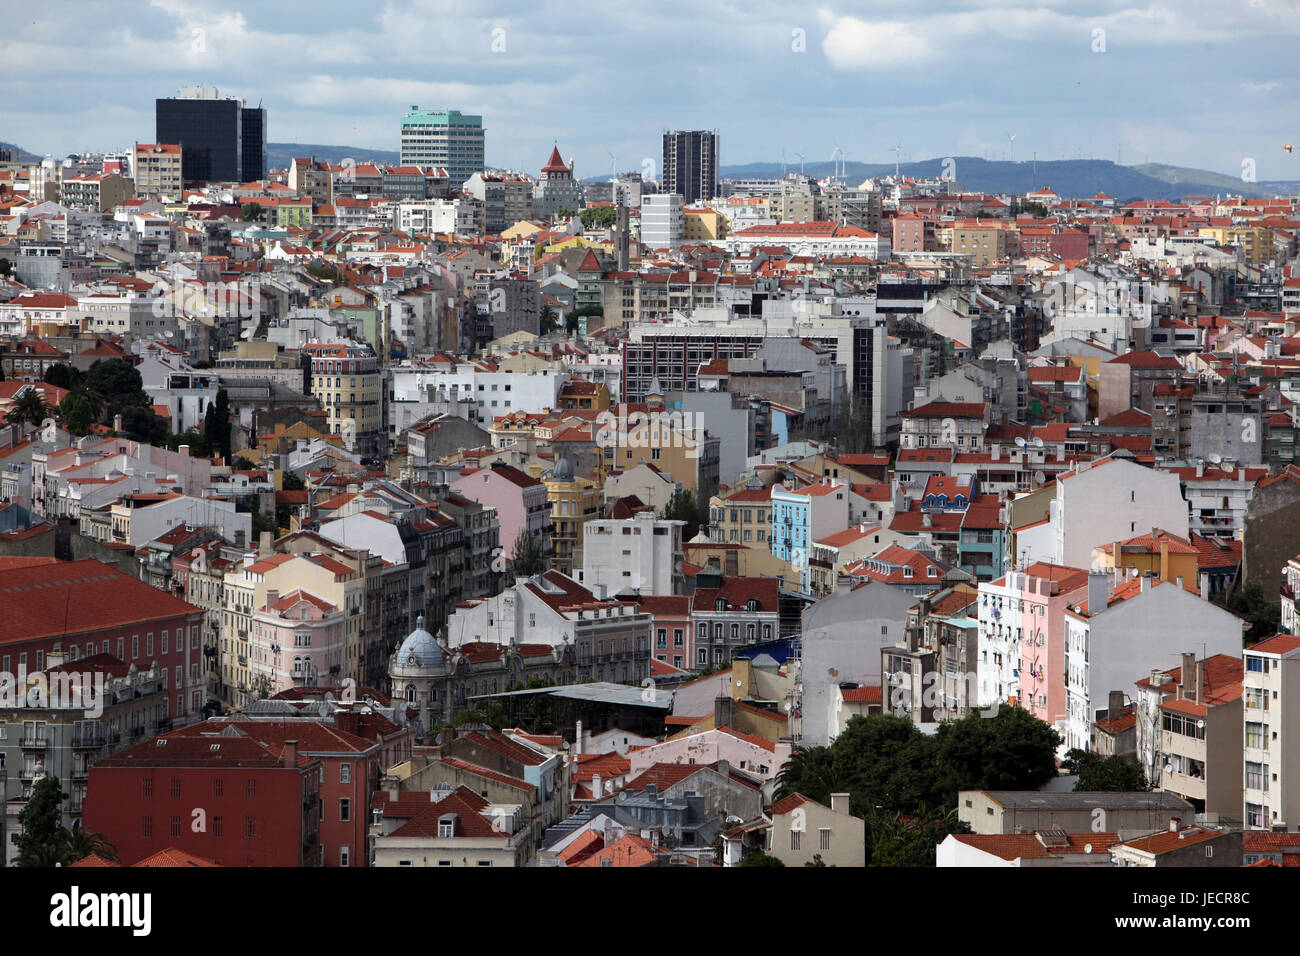 Portugal, Lisbon, city centre, overview, - Stock Image